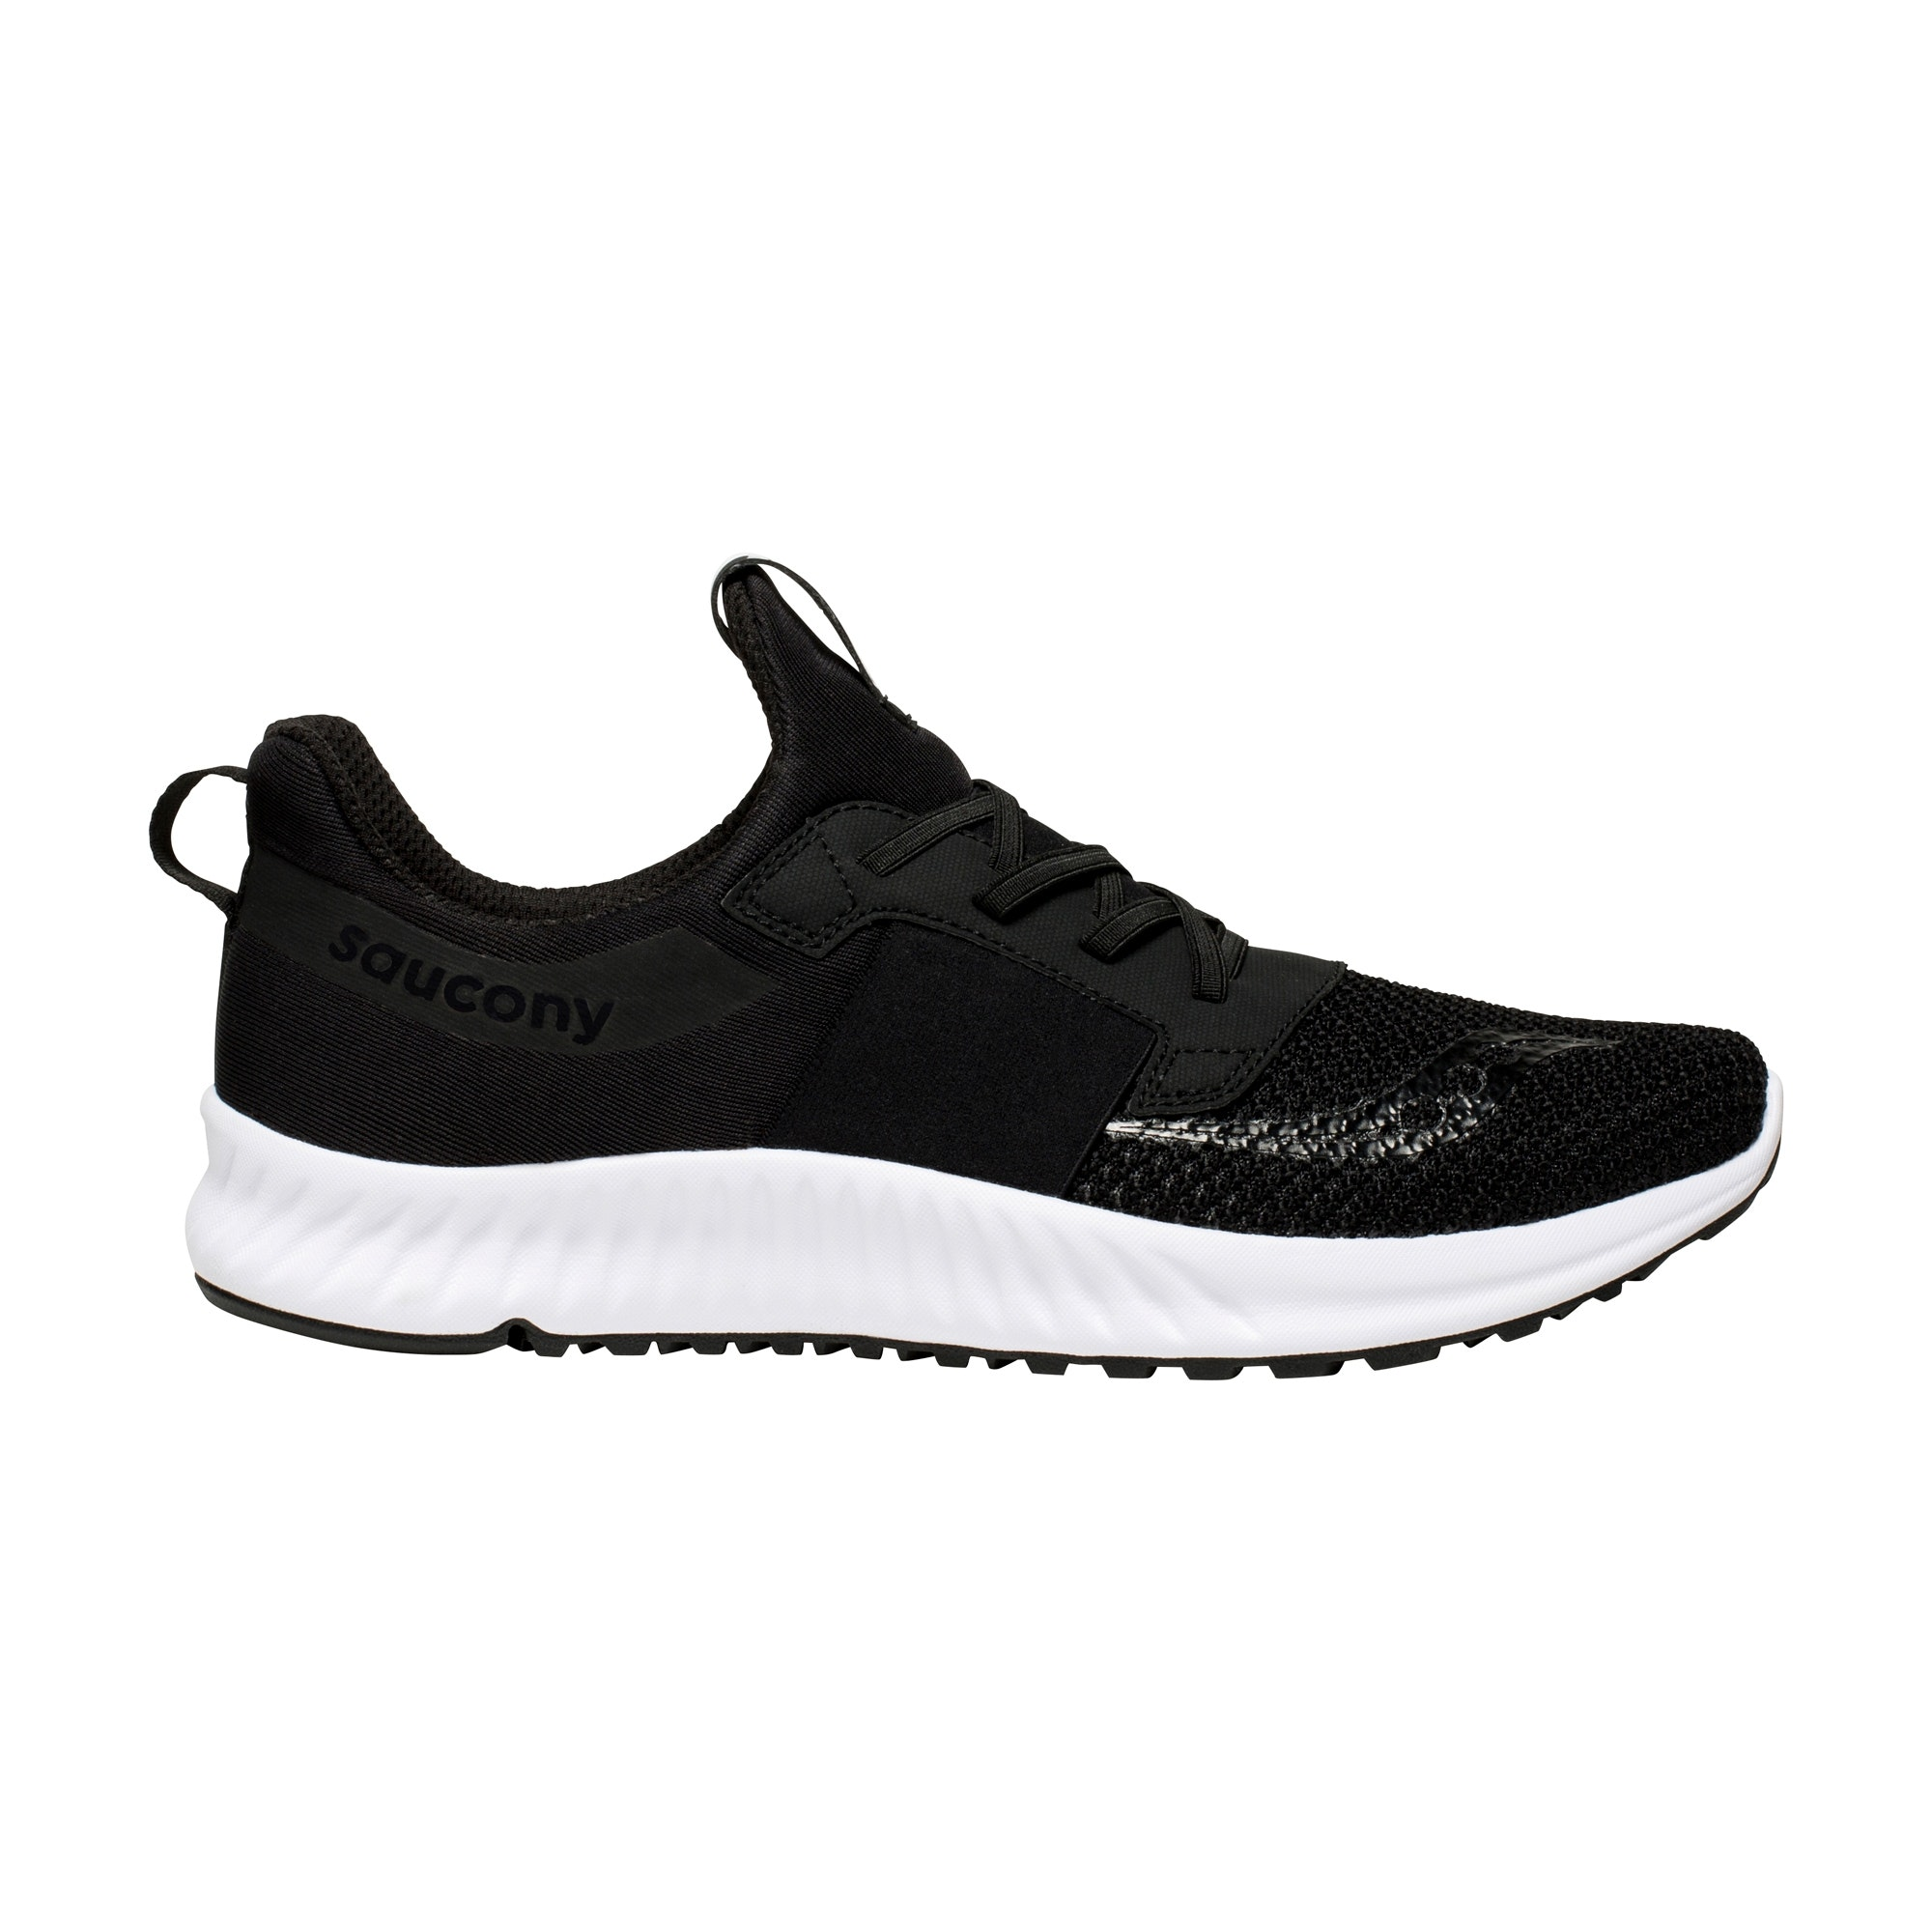 Shop for Swift Run Shoes Black at .au! See all